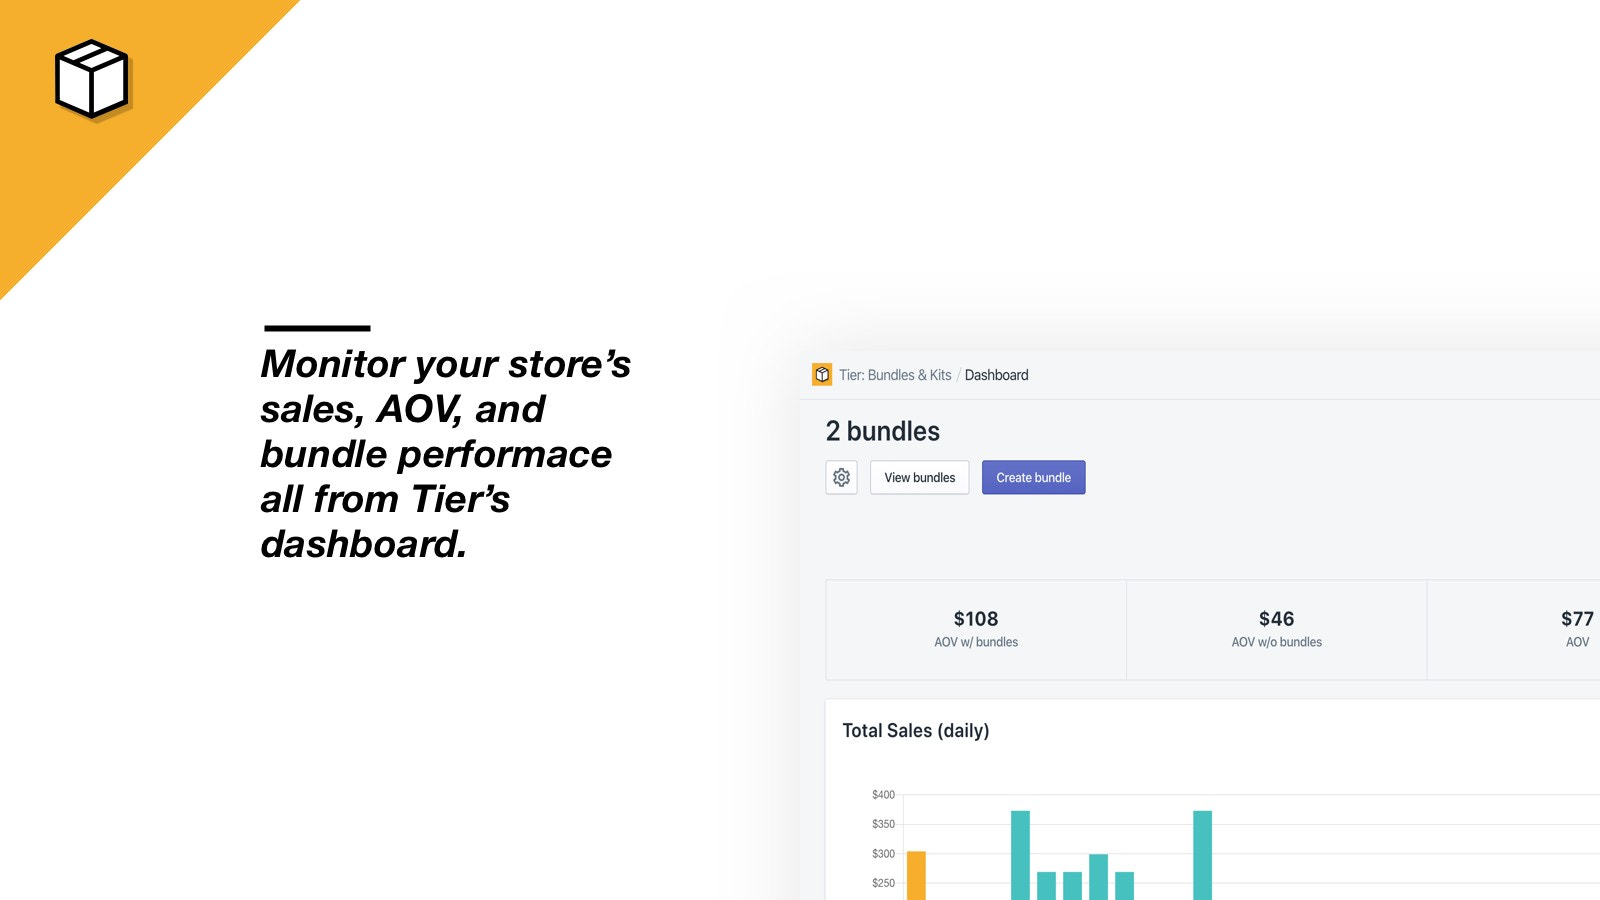 Monitor your store's sales, AOV, and bundle performance.